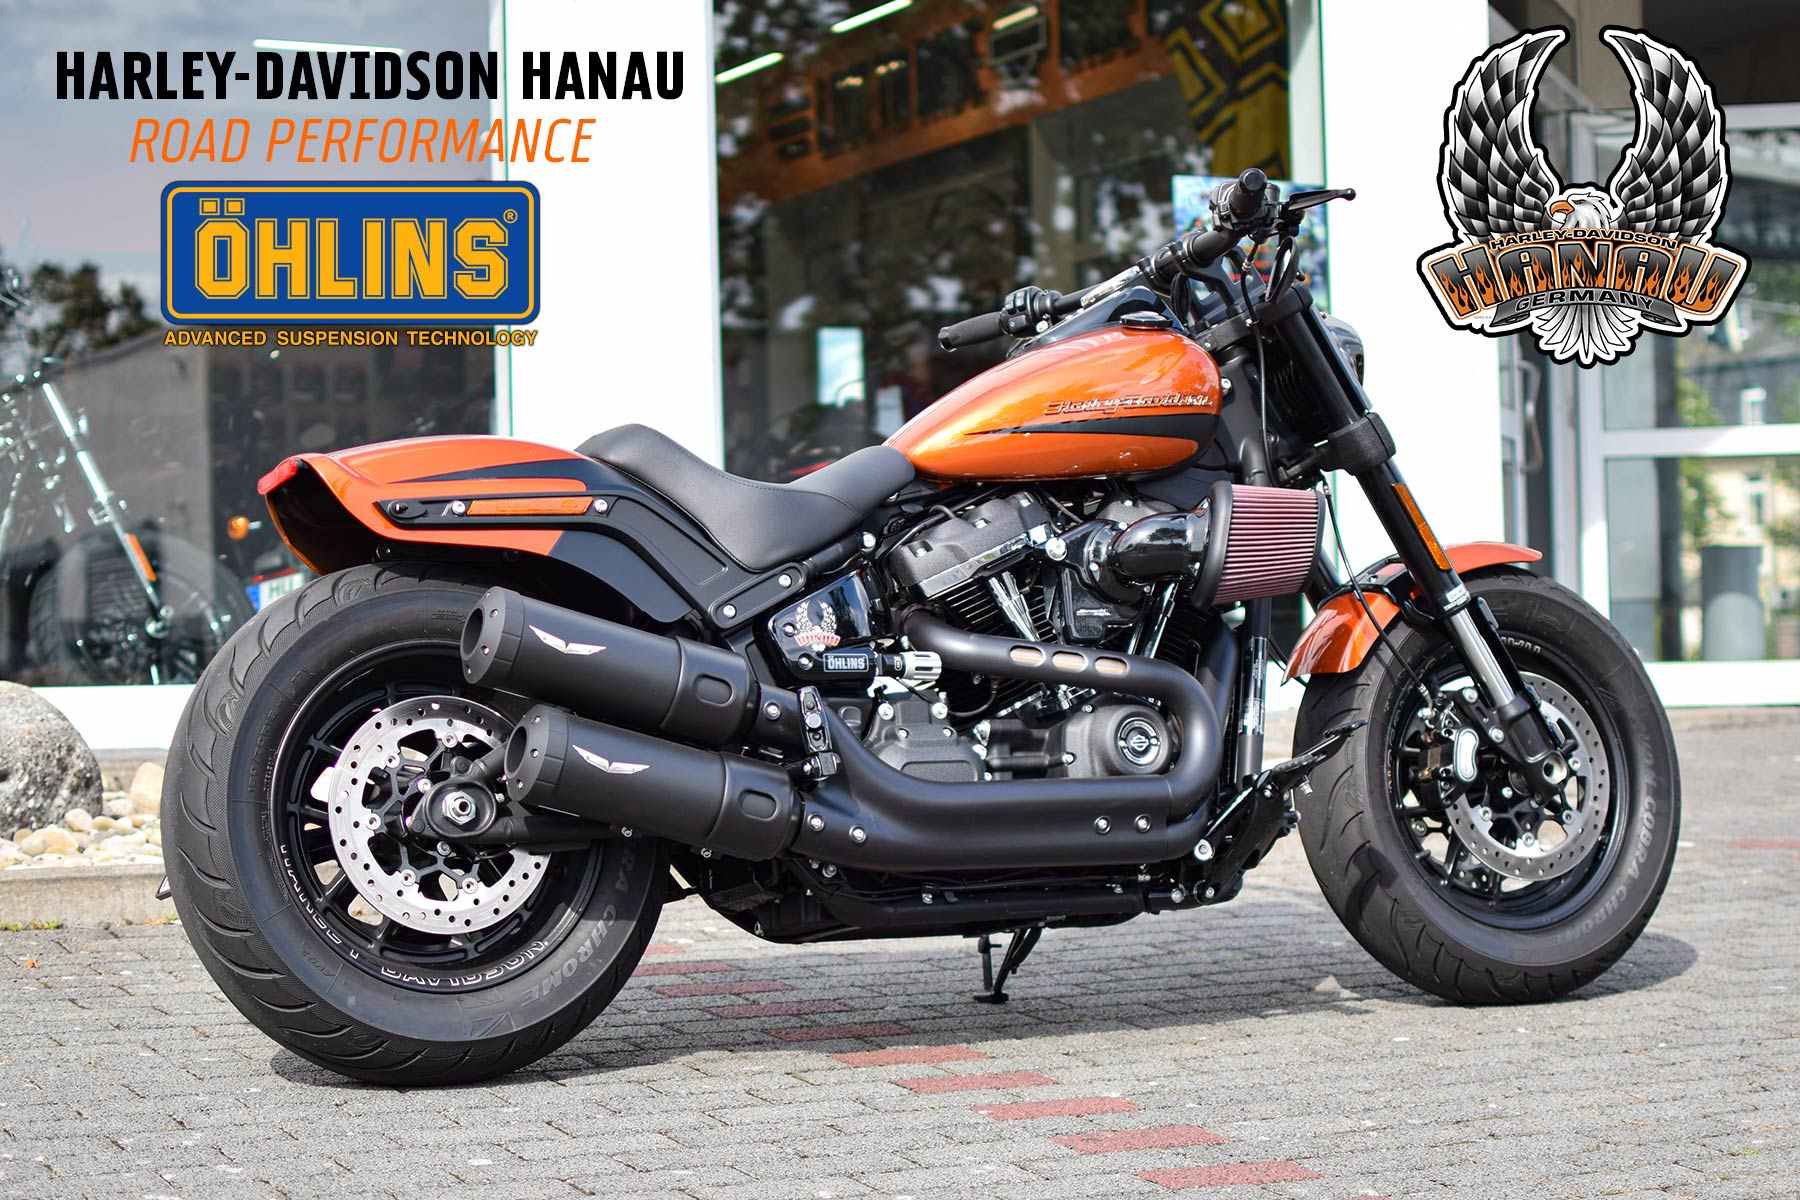 Harley-Davidson Hanau präsentiert Fat Bob Road Performance by Öhlins